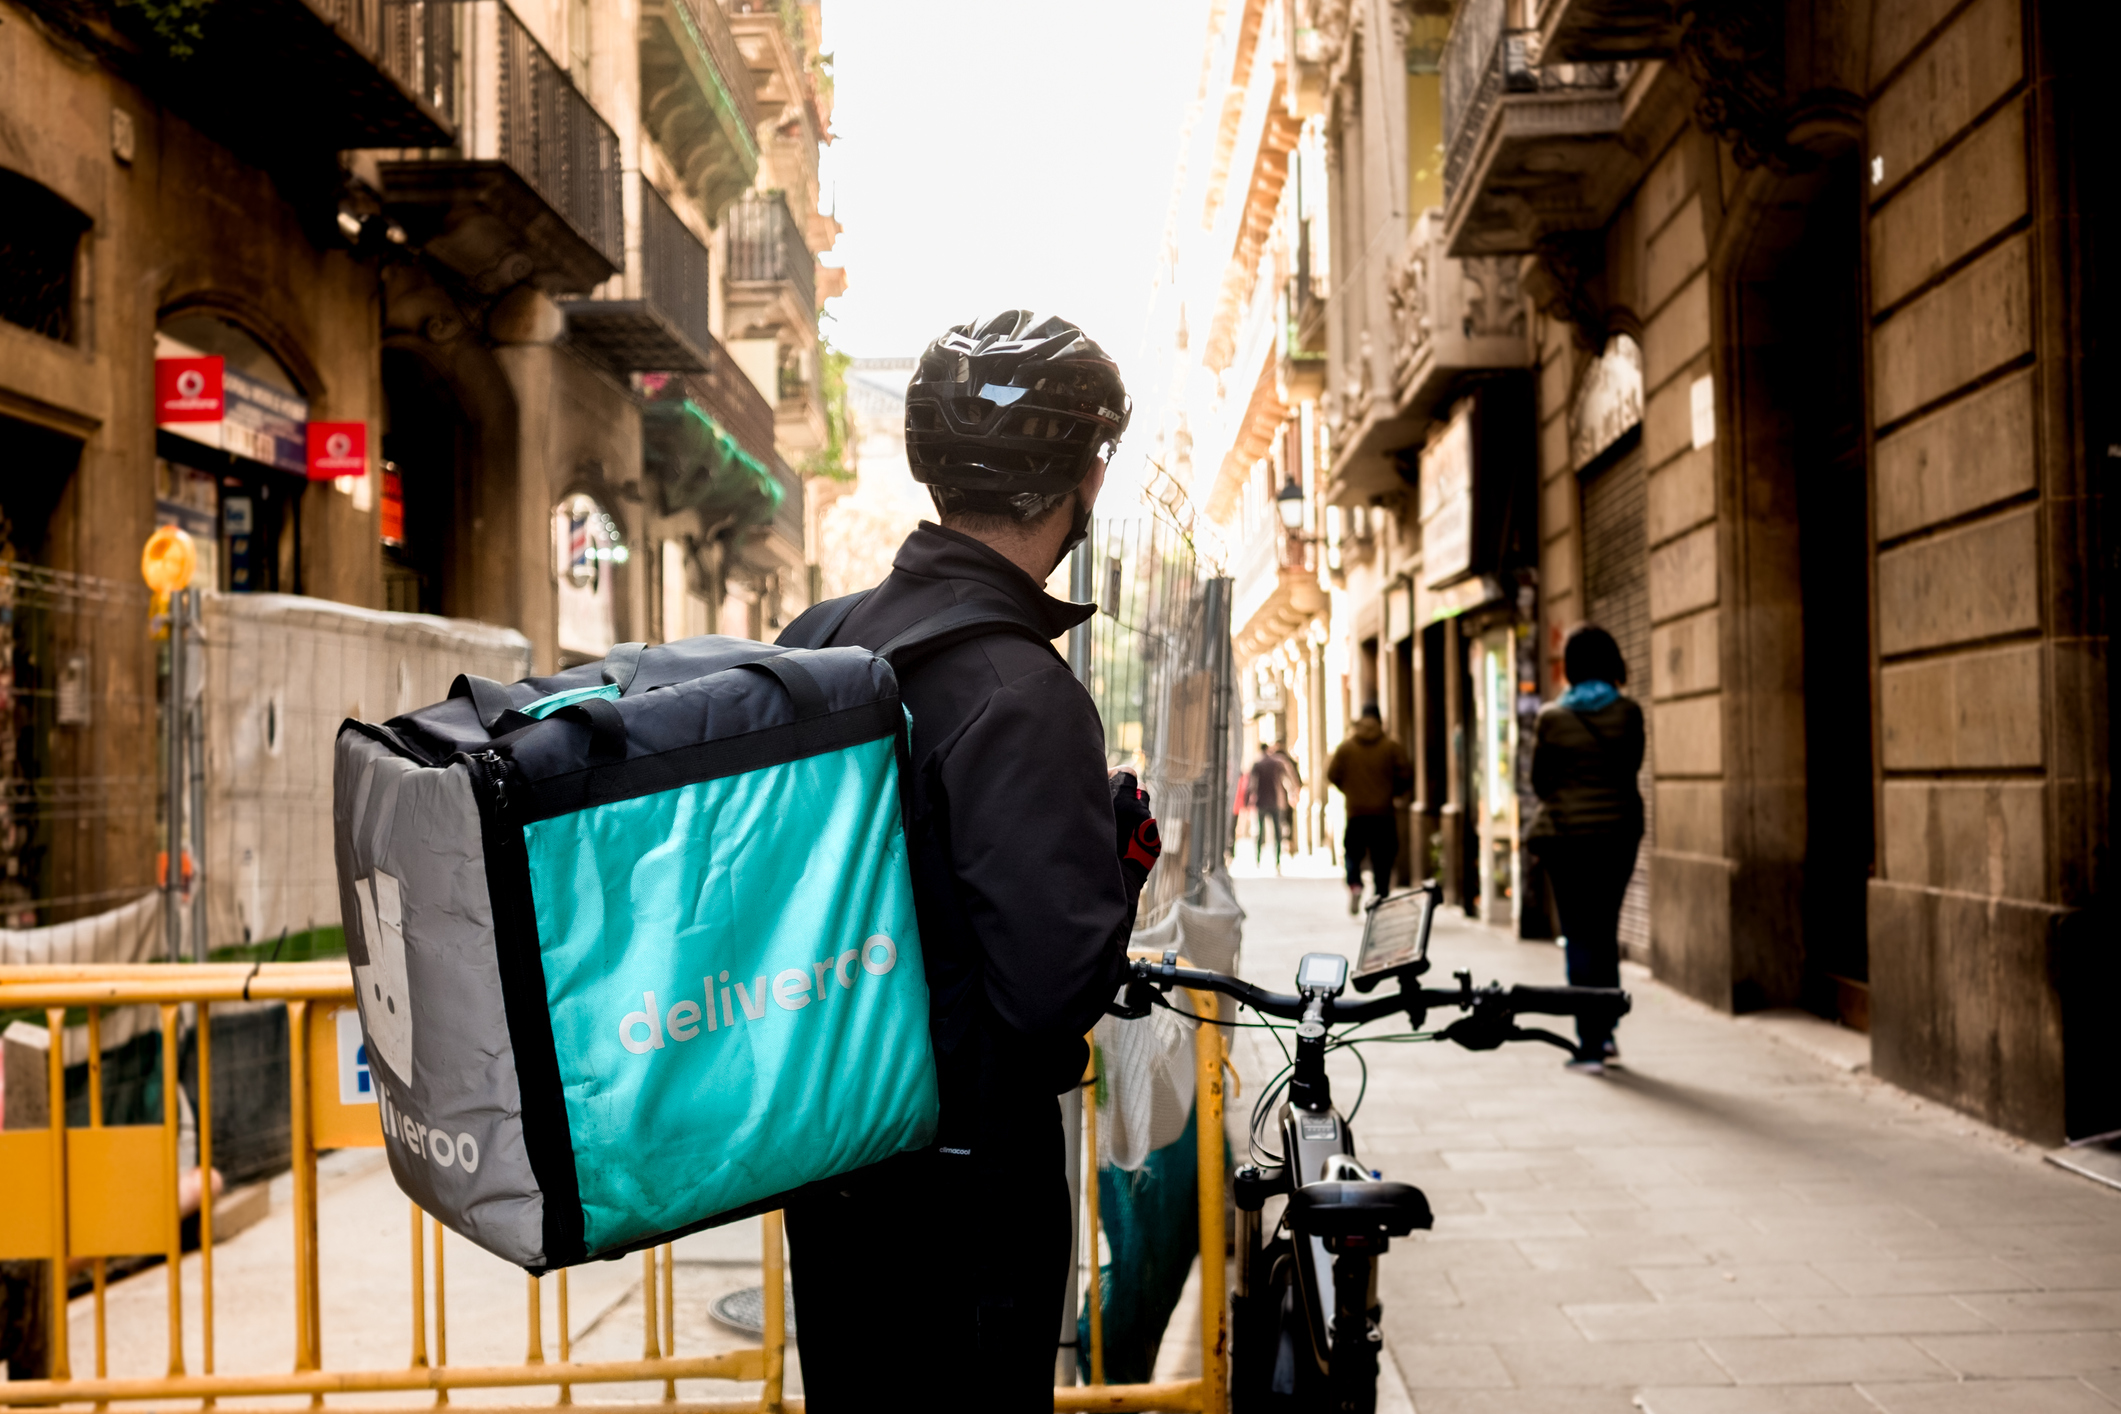 Deliveroo employee